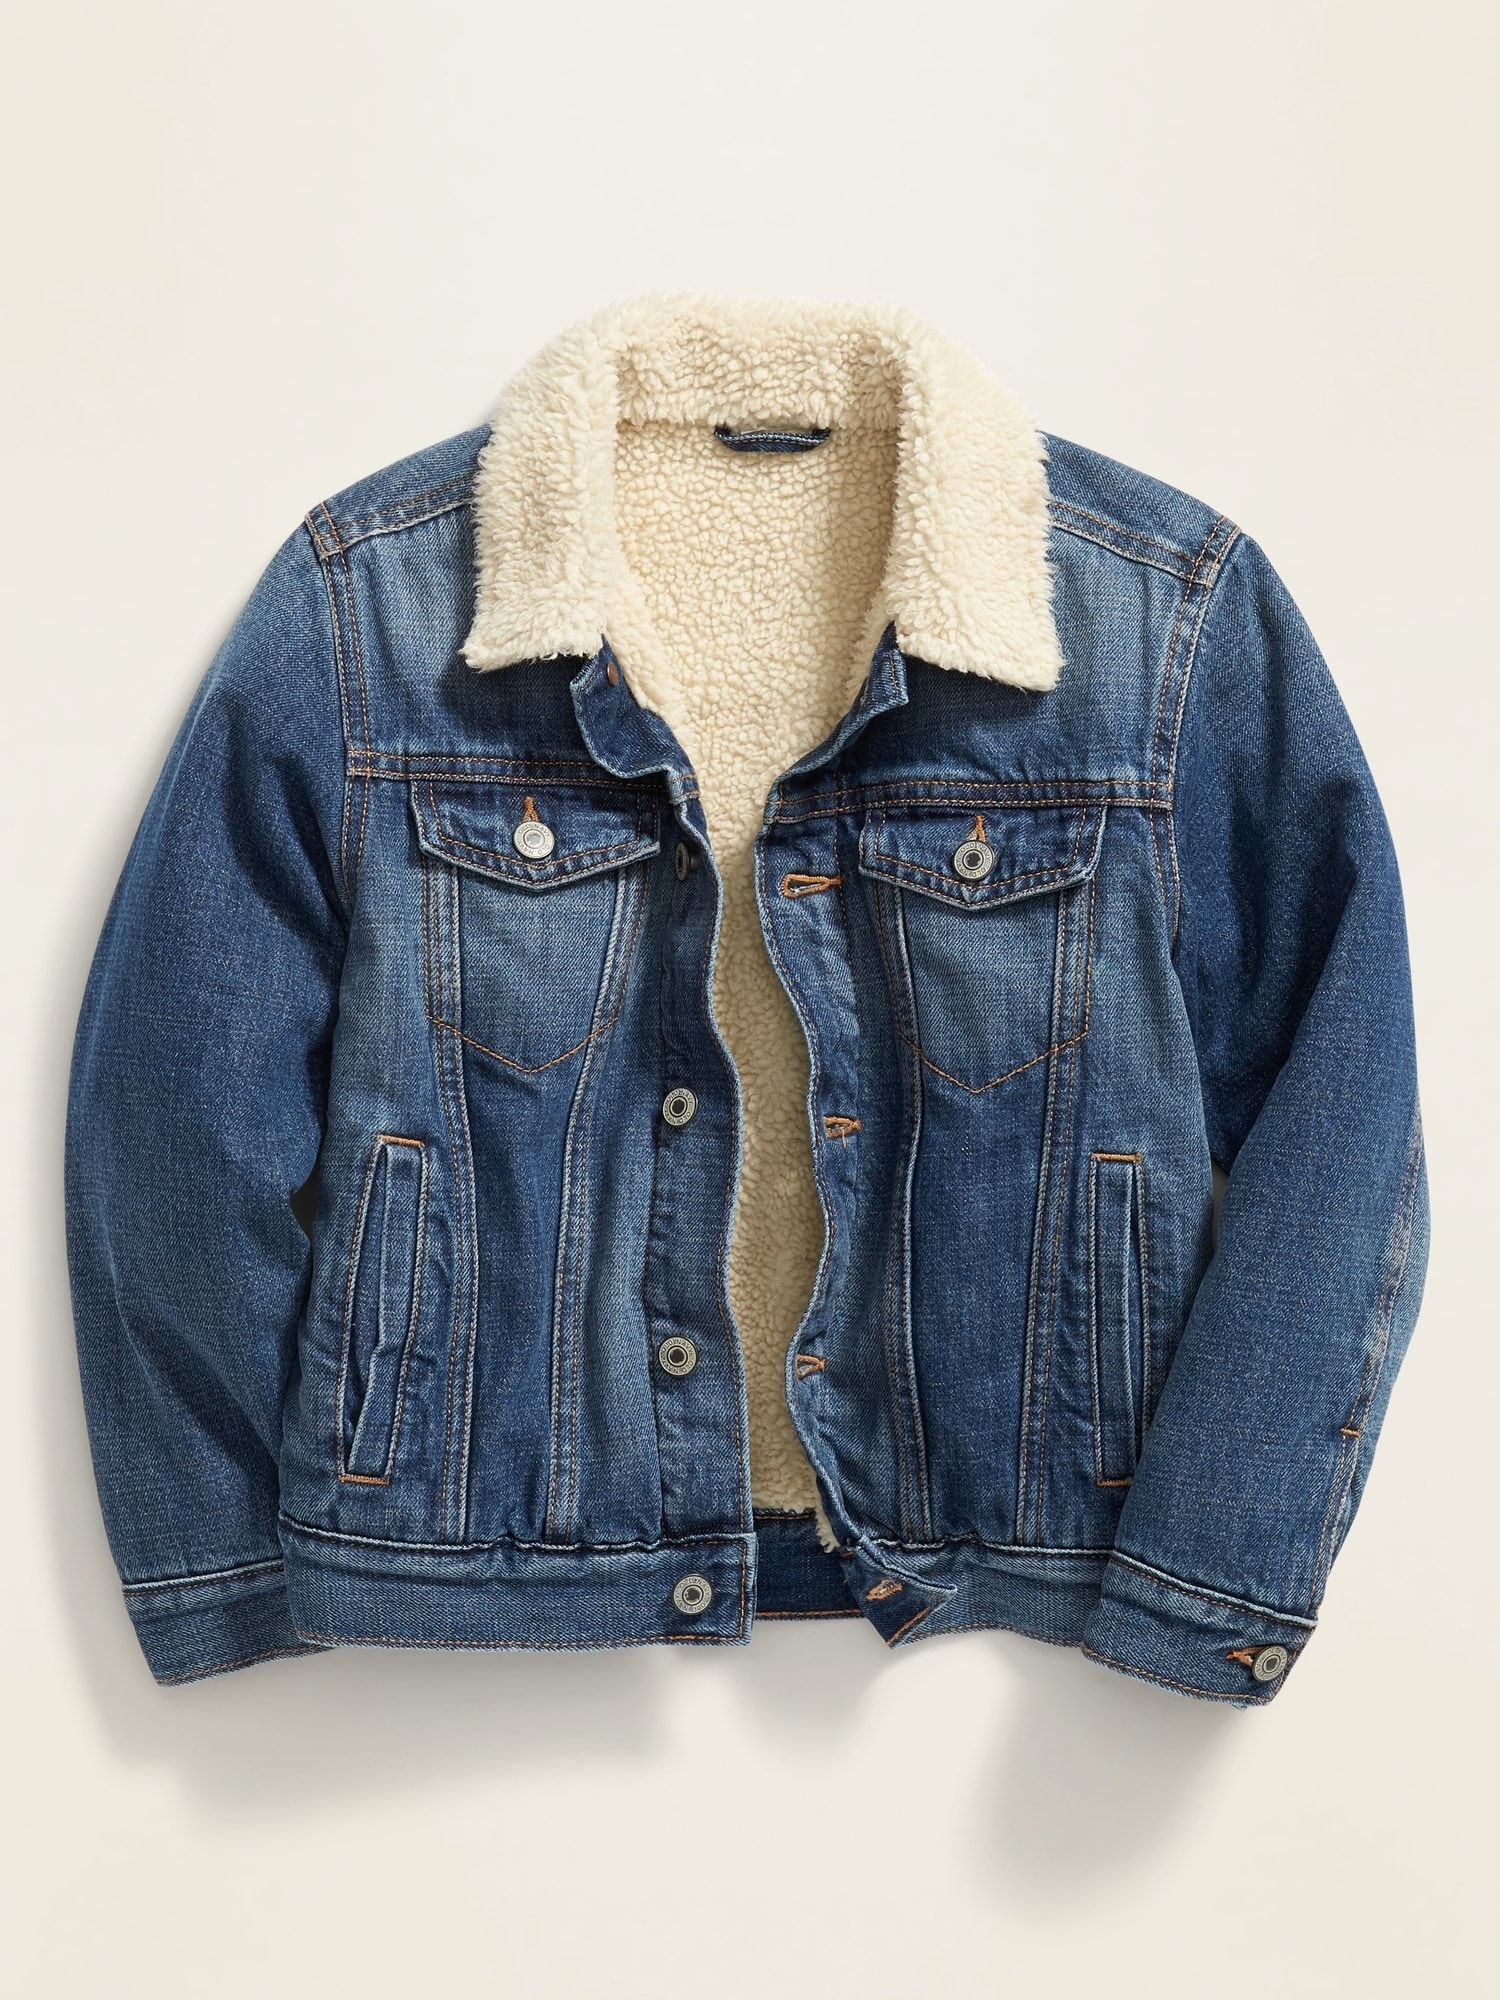 Sherpa Lined Jean Jacket For Boys In 2021 Lined Jeans Sherpa Lined Jean Jacket Boys Jean Jacket [ 2000 x 1500 Pixel ]